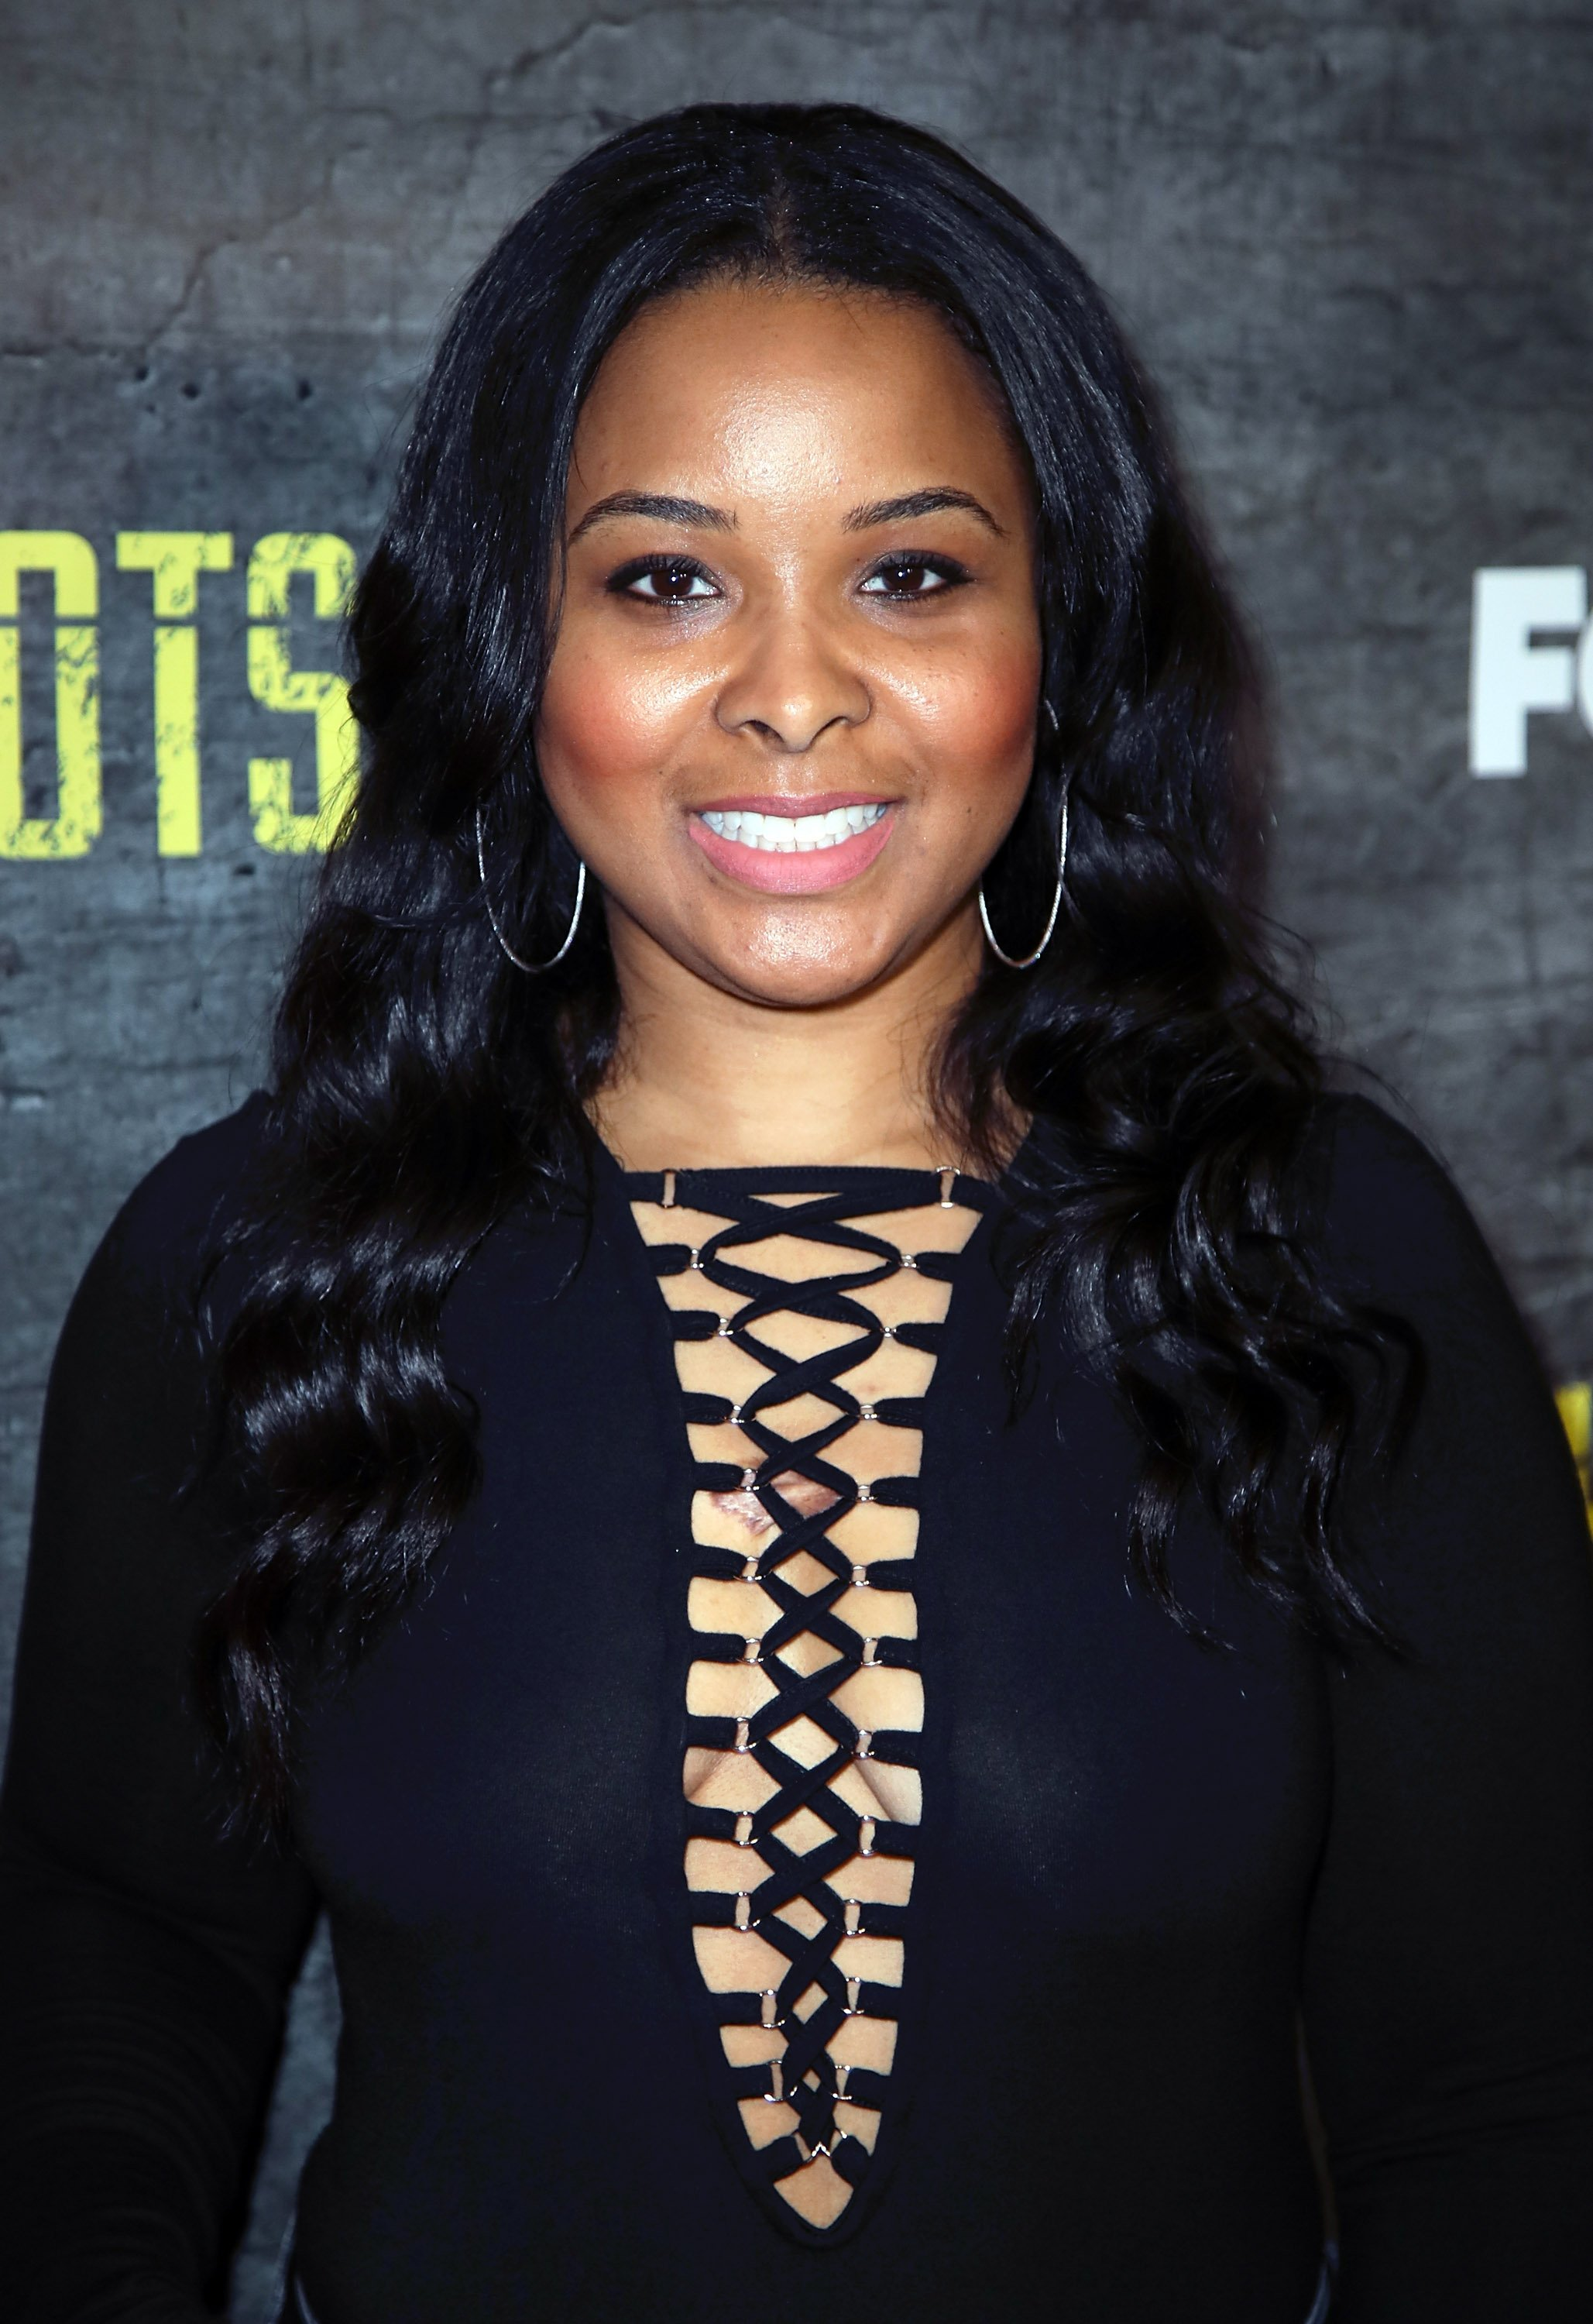 """Mechelle McCain attends a screening and discussion of FOX's """"Shots Fired"""" at Pacific Design Center on March 16, 2017 in West Hollywood, California. 